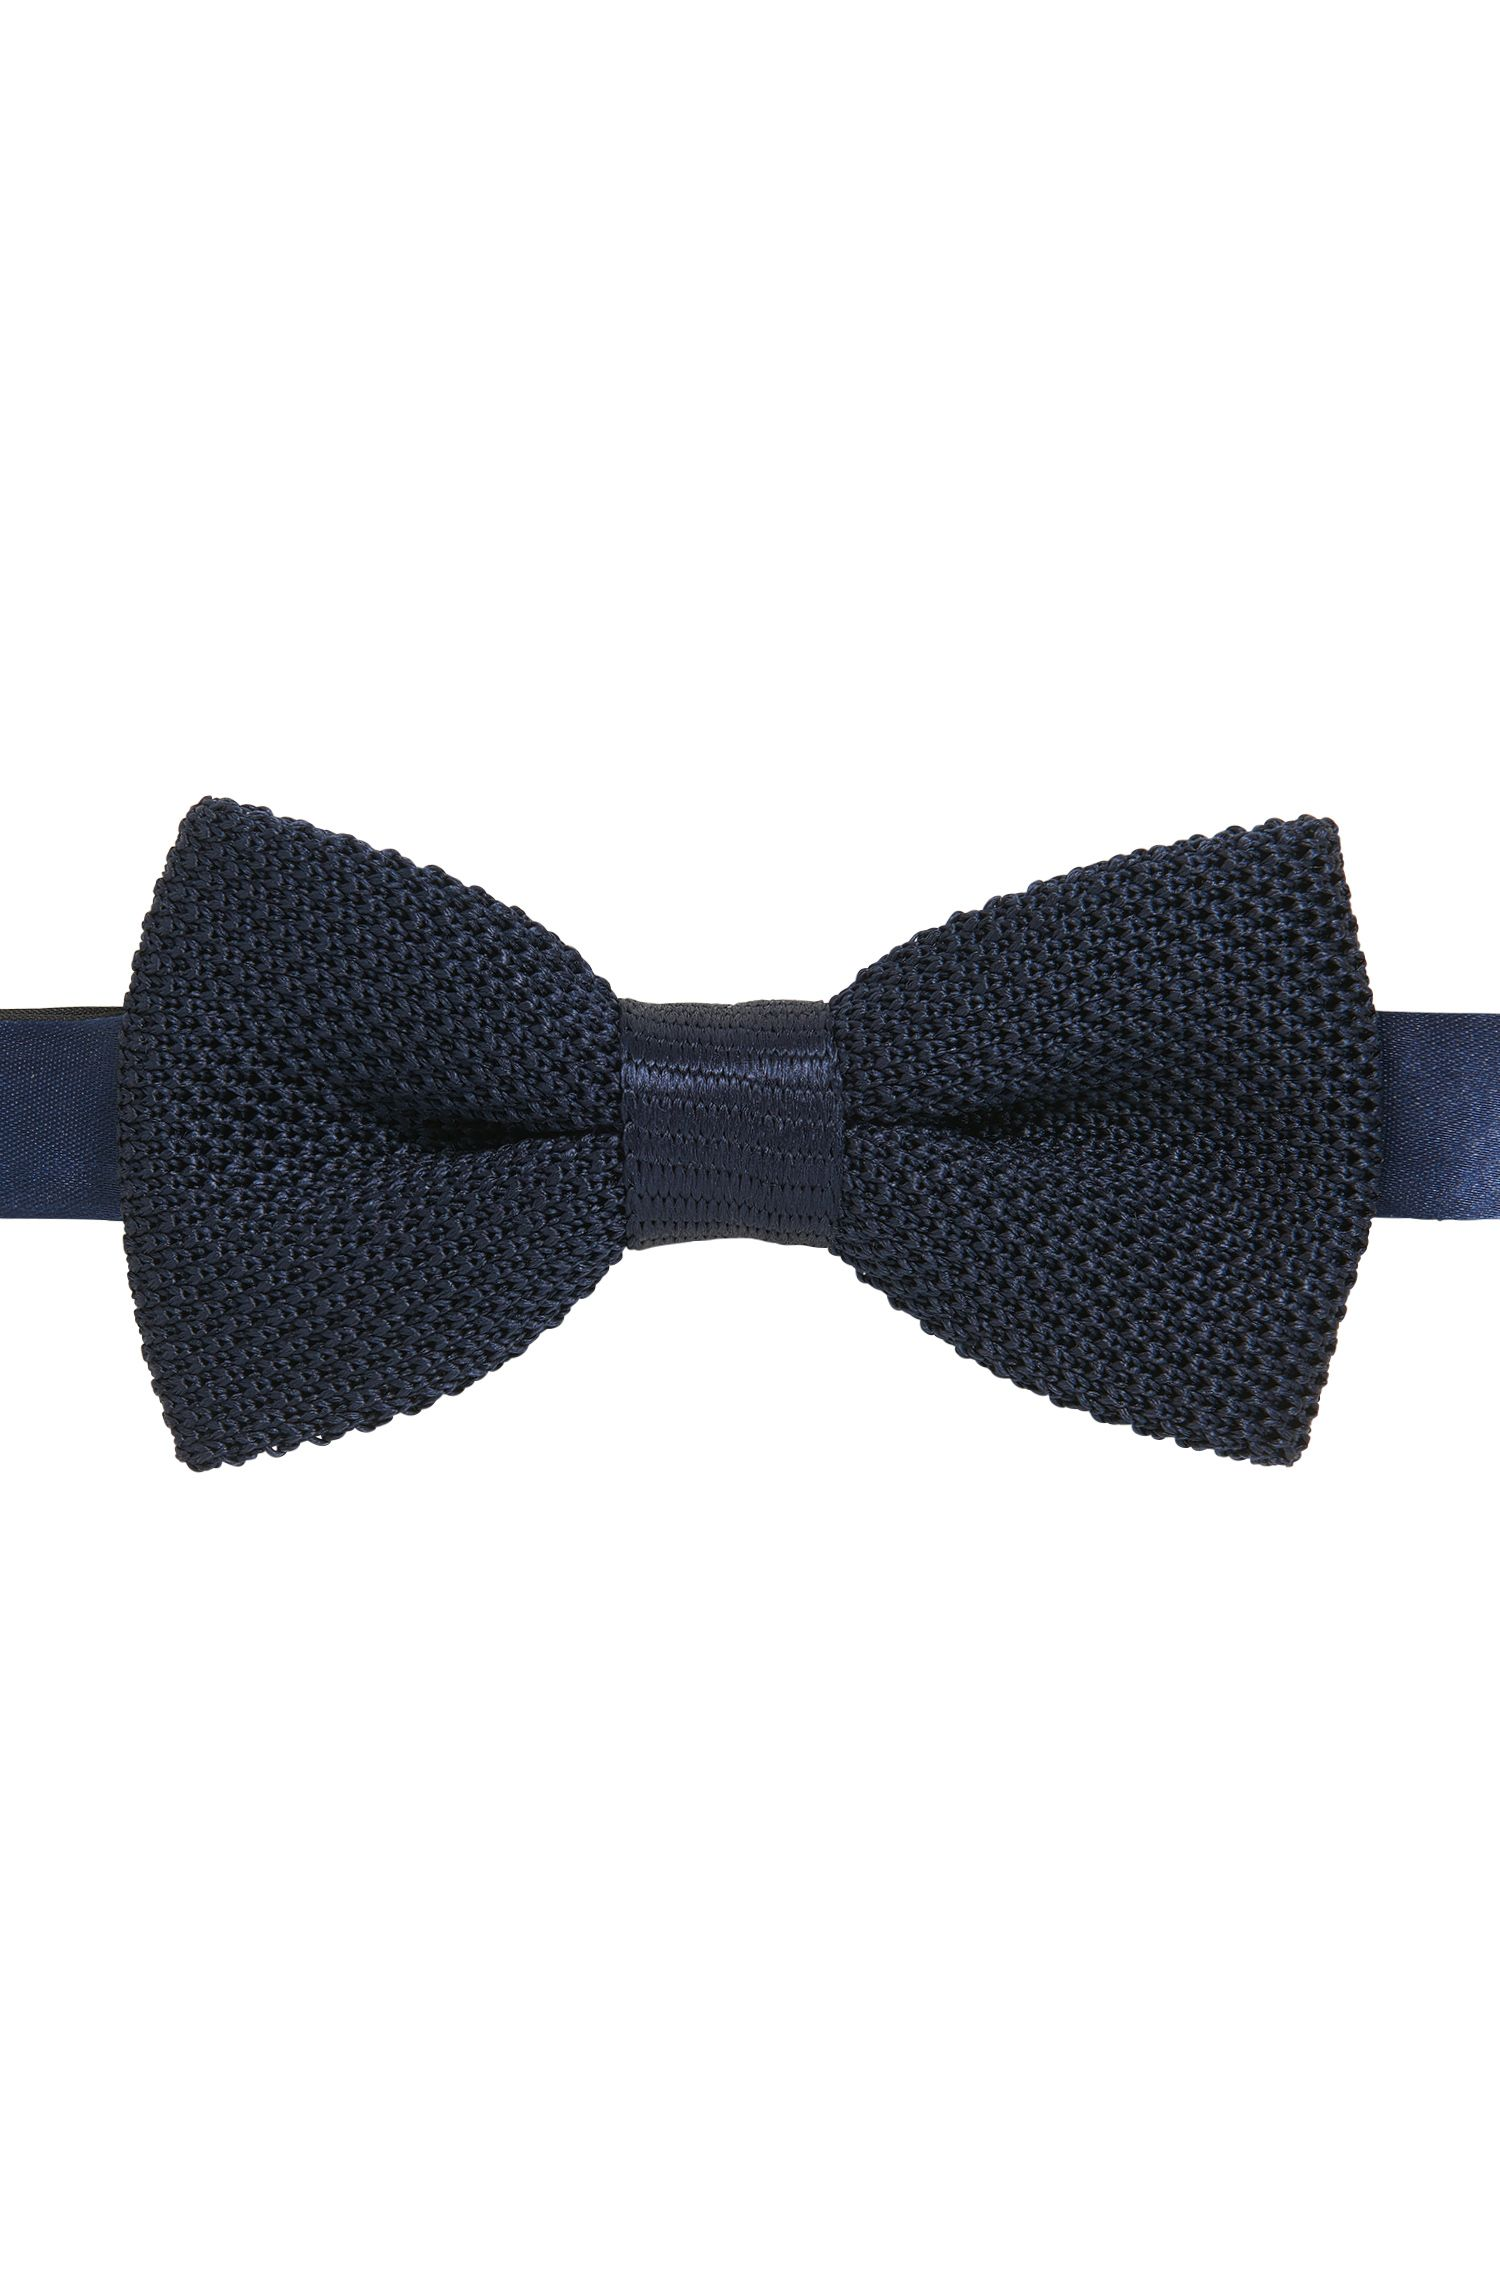 Italian-made bow tie in knitted silk piqué